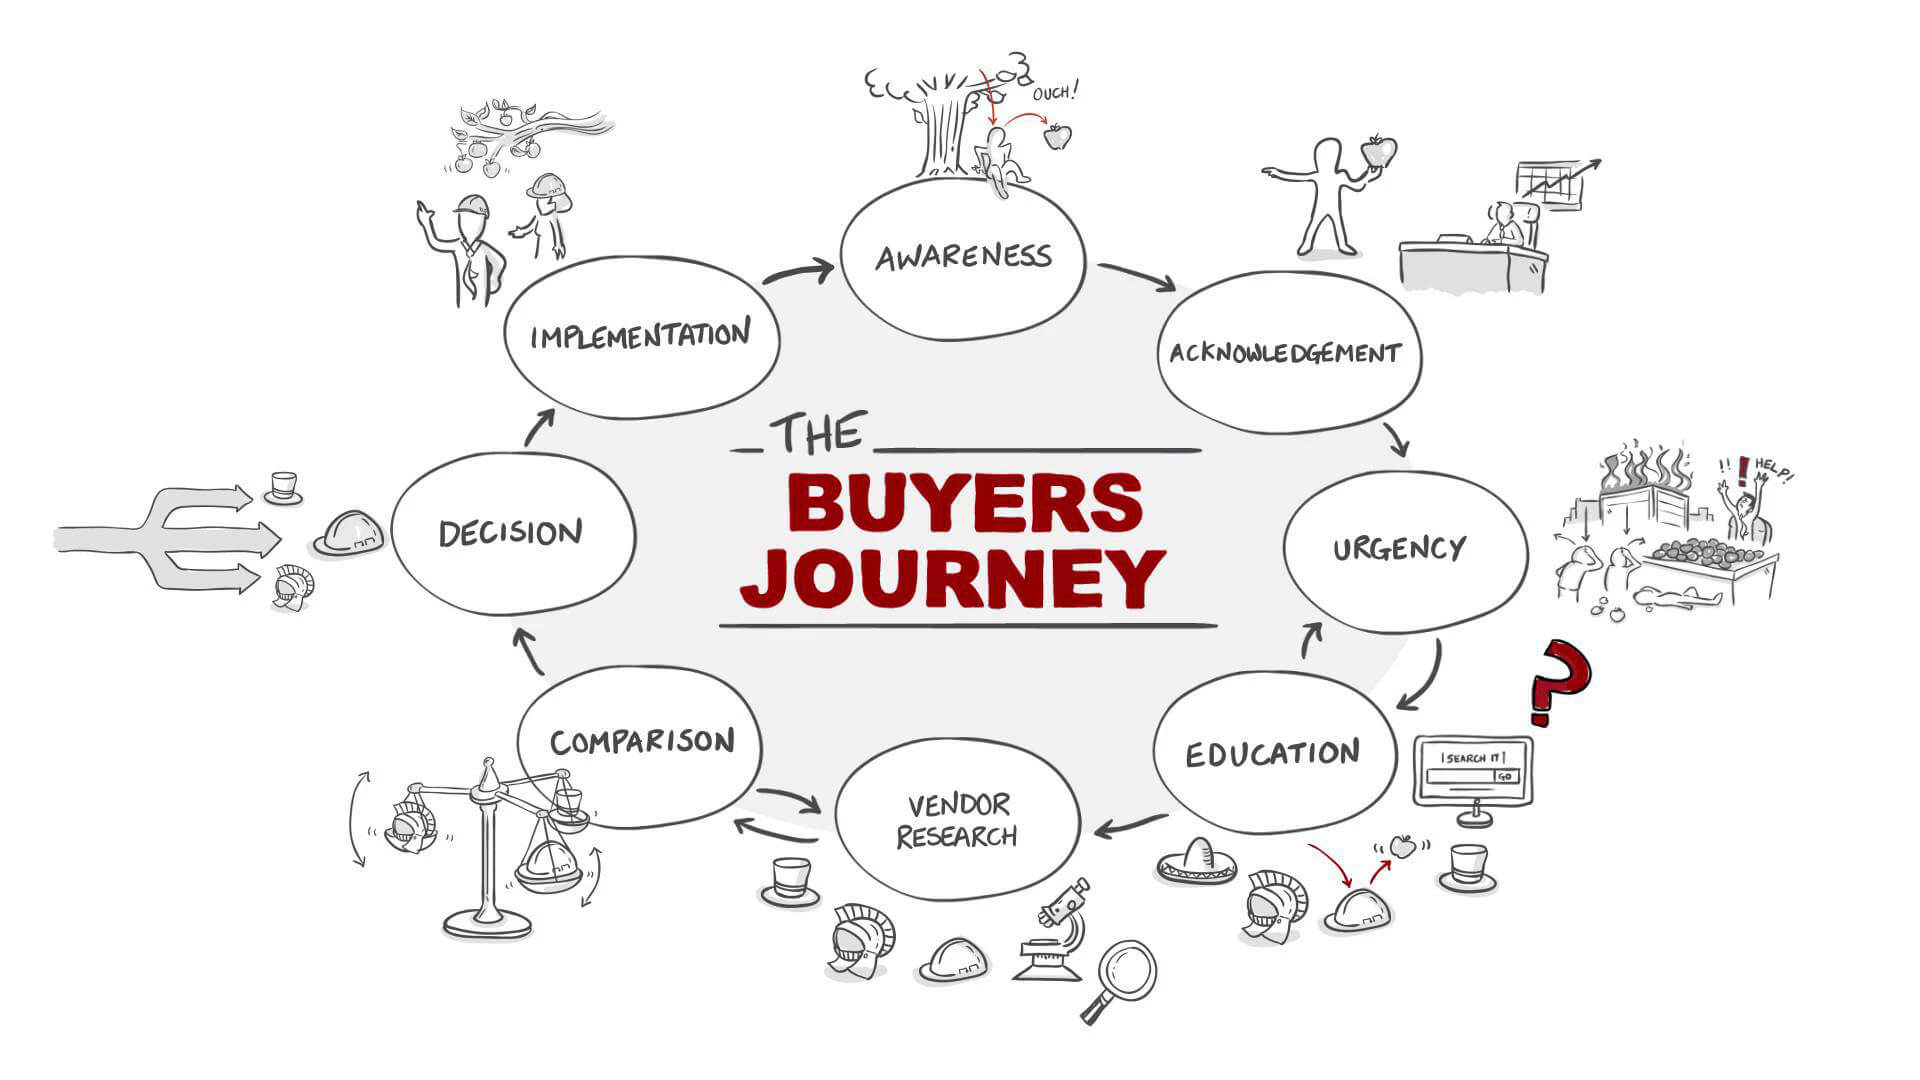 Video the introducing concept of the buyers journey part 1 of 4